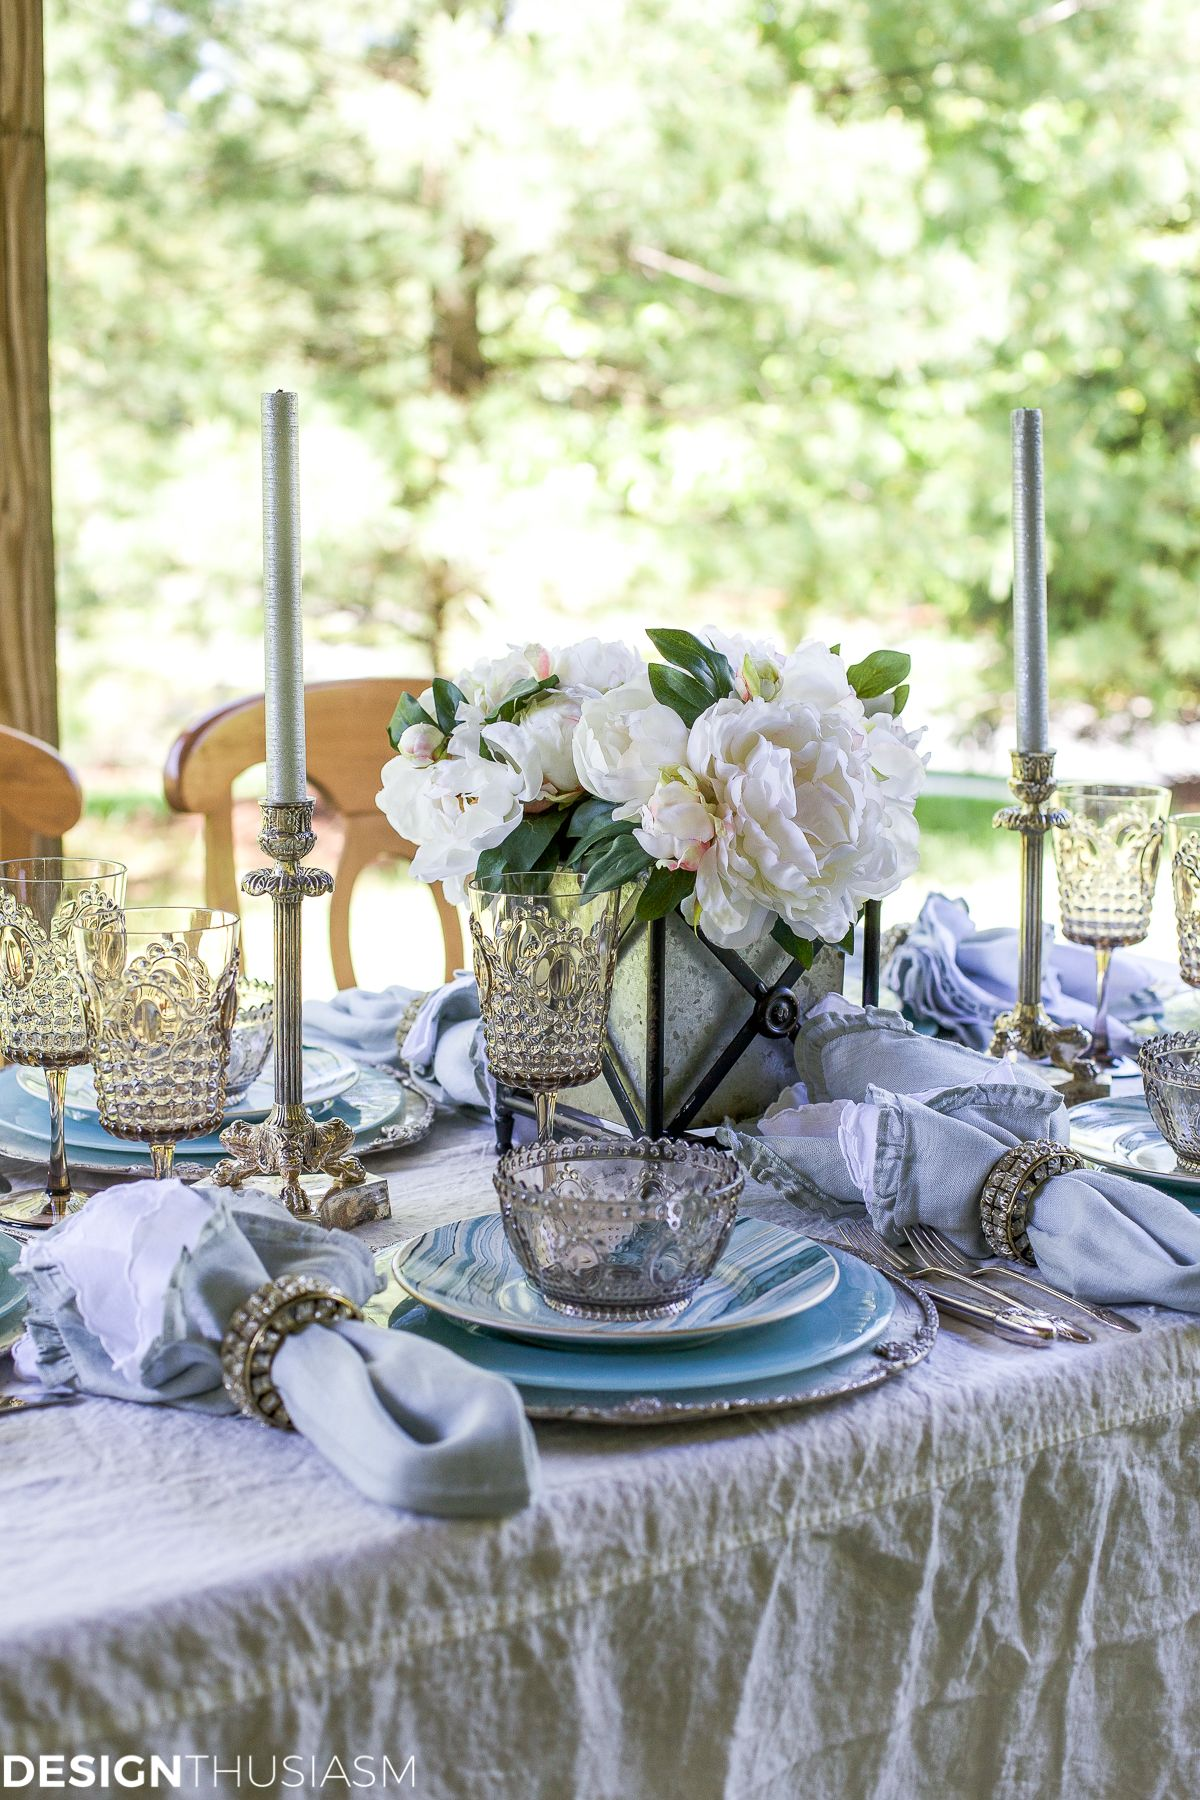 Setting an outdoor table with coastal dinnerware is a fun way to use seaside decor for a wonderful summer entertaining theme. & Seaside Decor: Setting a Summer Table with Coastal Dinnerware ...